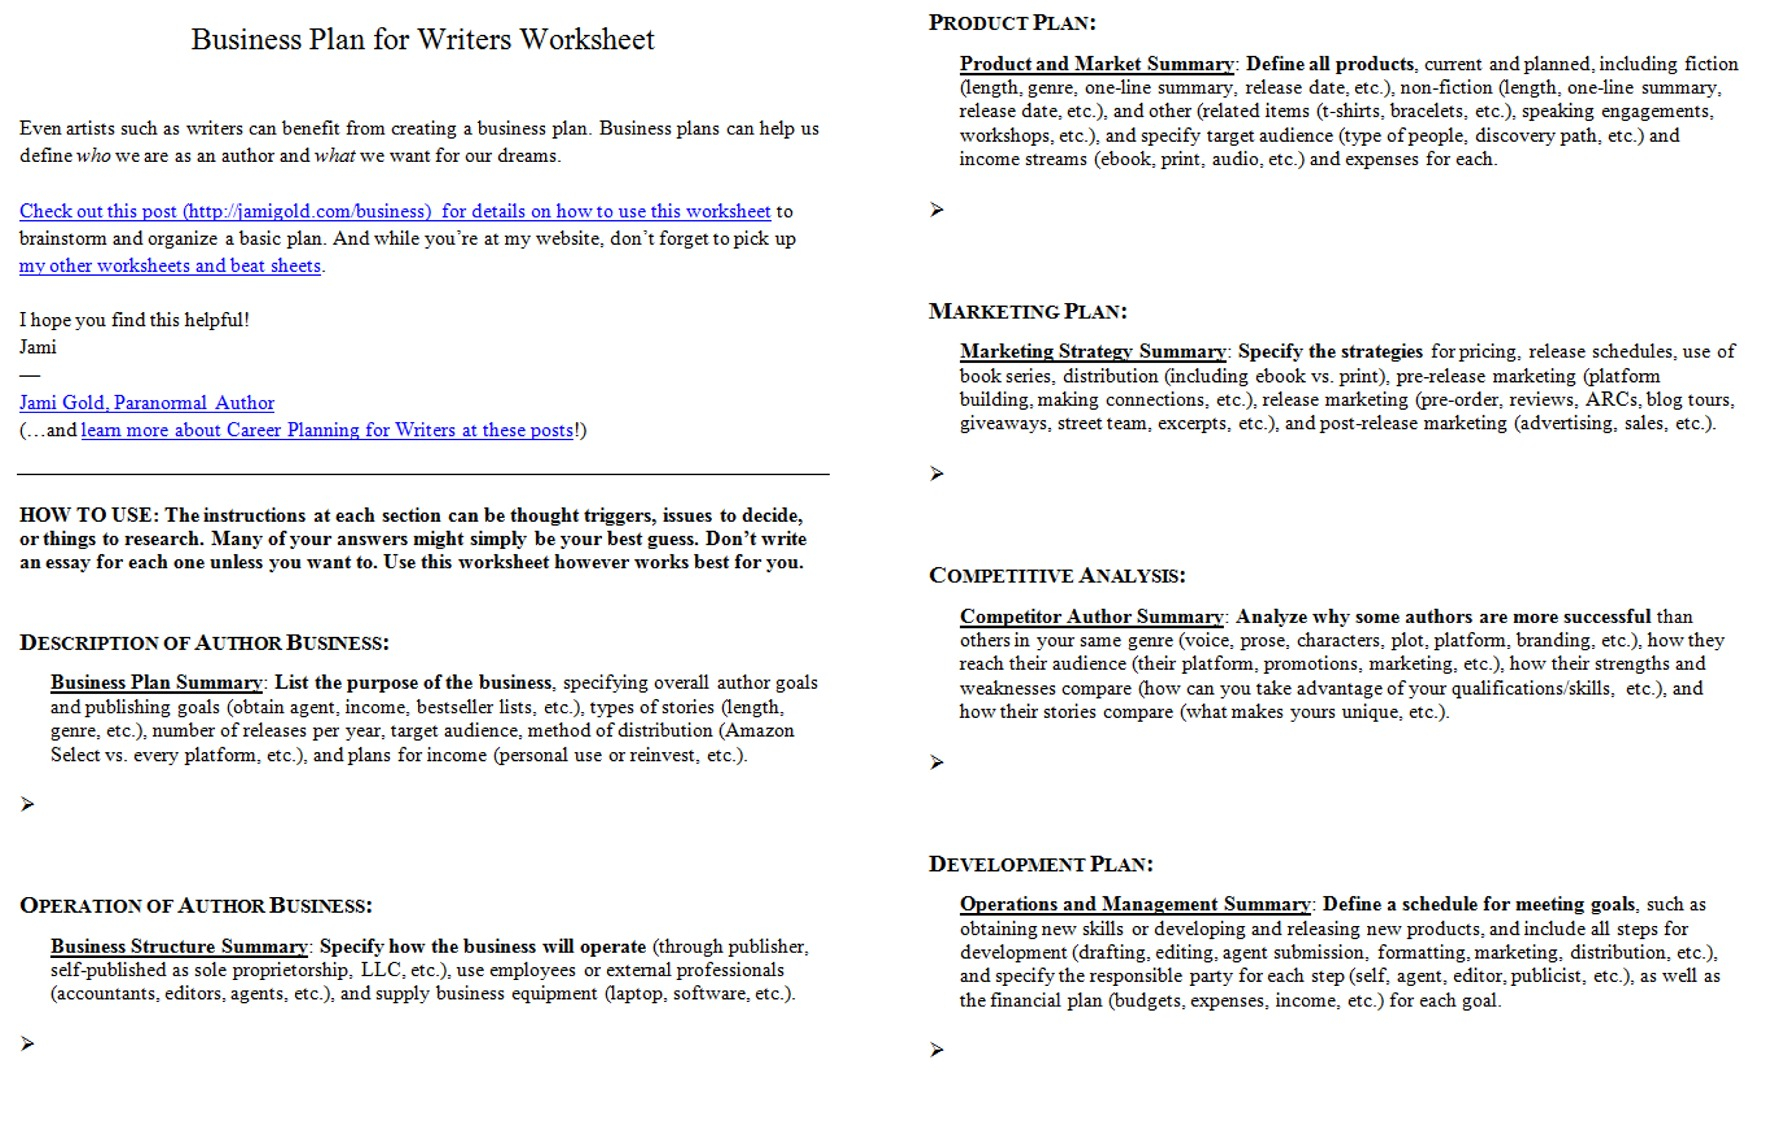 Proatmealus  Inspiring Worksheets For Writers  Jami Gold Paranormal Author With Glamorous Screen Shot Of Both Pages Of The Business Plan For Writers Worksheet With Enchanting Marcy Mathworks Worksheet Answers Also Free Fact Family Worksheets In Addition Touch Math Money Worksheets And Chemistry Percent Composition Worksheet As Well As Animal Cells Worksheet Additionally Usaa Budget Worksheet From Jamigoldcom With Proatmealus  Glamorous Worksheets For Writers  Jami Gold Paranormal Author With Enchanting Screen Shot Of Both Pages Of The Business Plan For Writers Worksheet And Inspiring Marcy Mathworks Worksheet Answers Also Free Fact Family Worksheets In Addition Touch Math Money Worksheets From Jamigoldcom